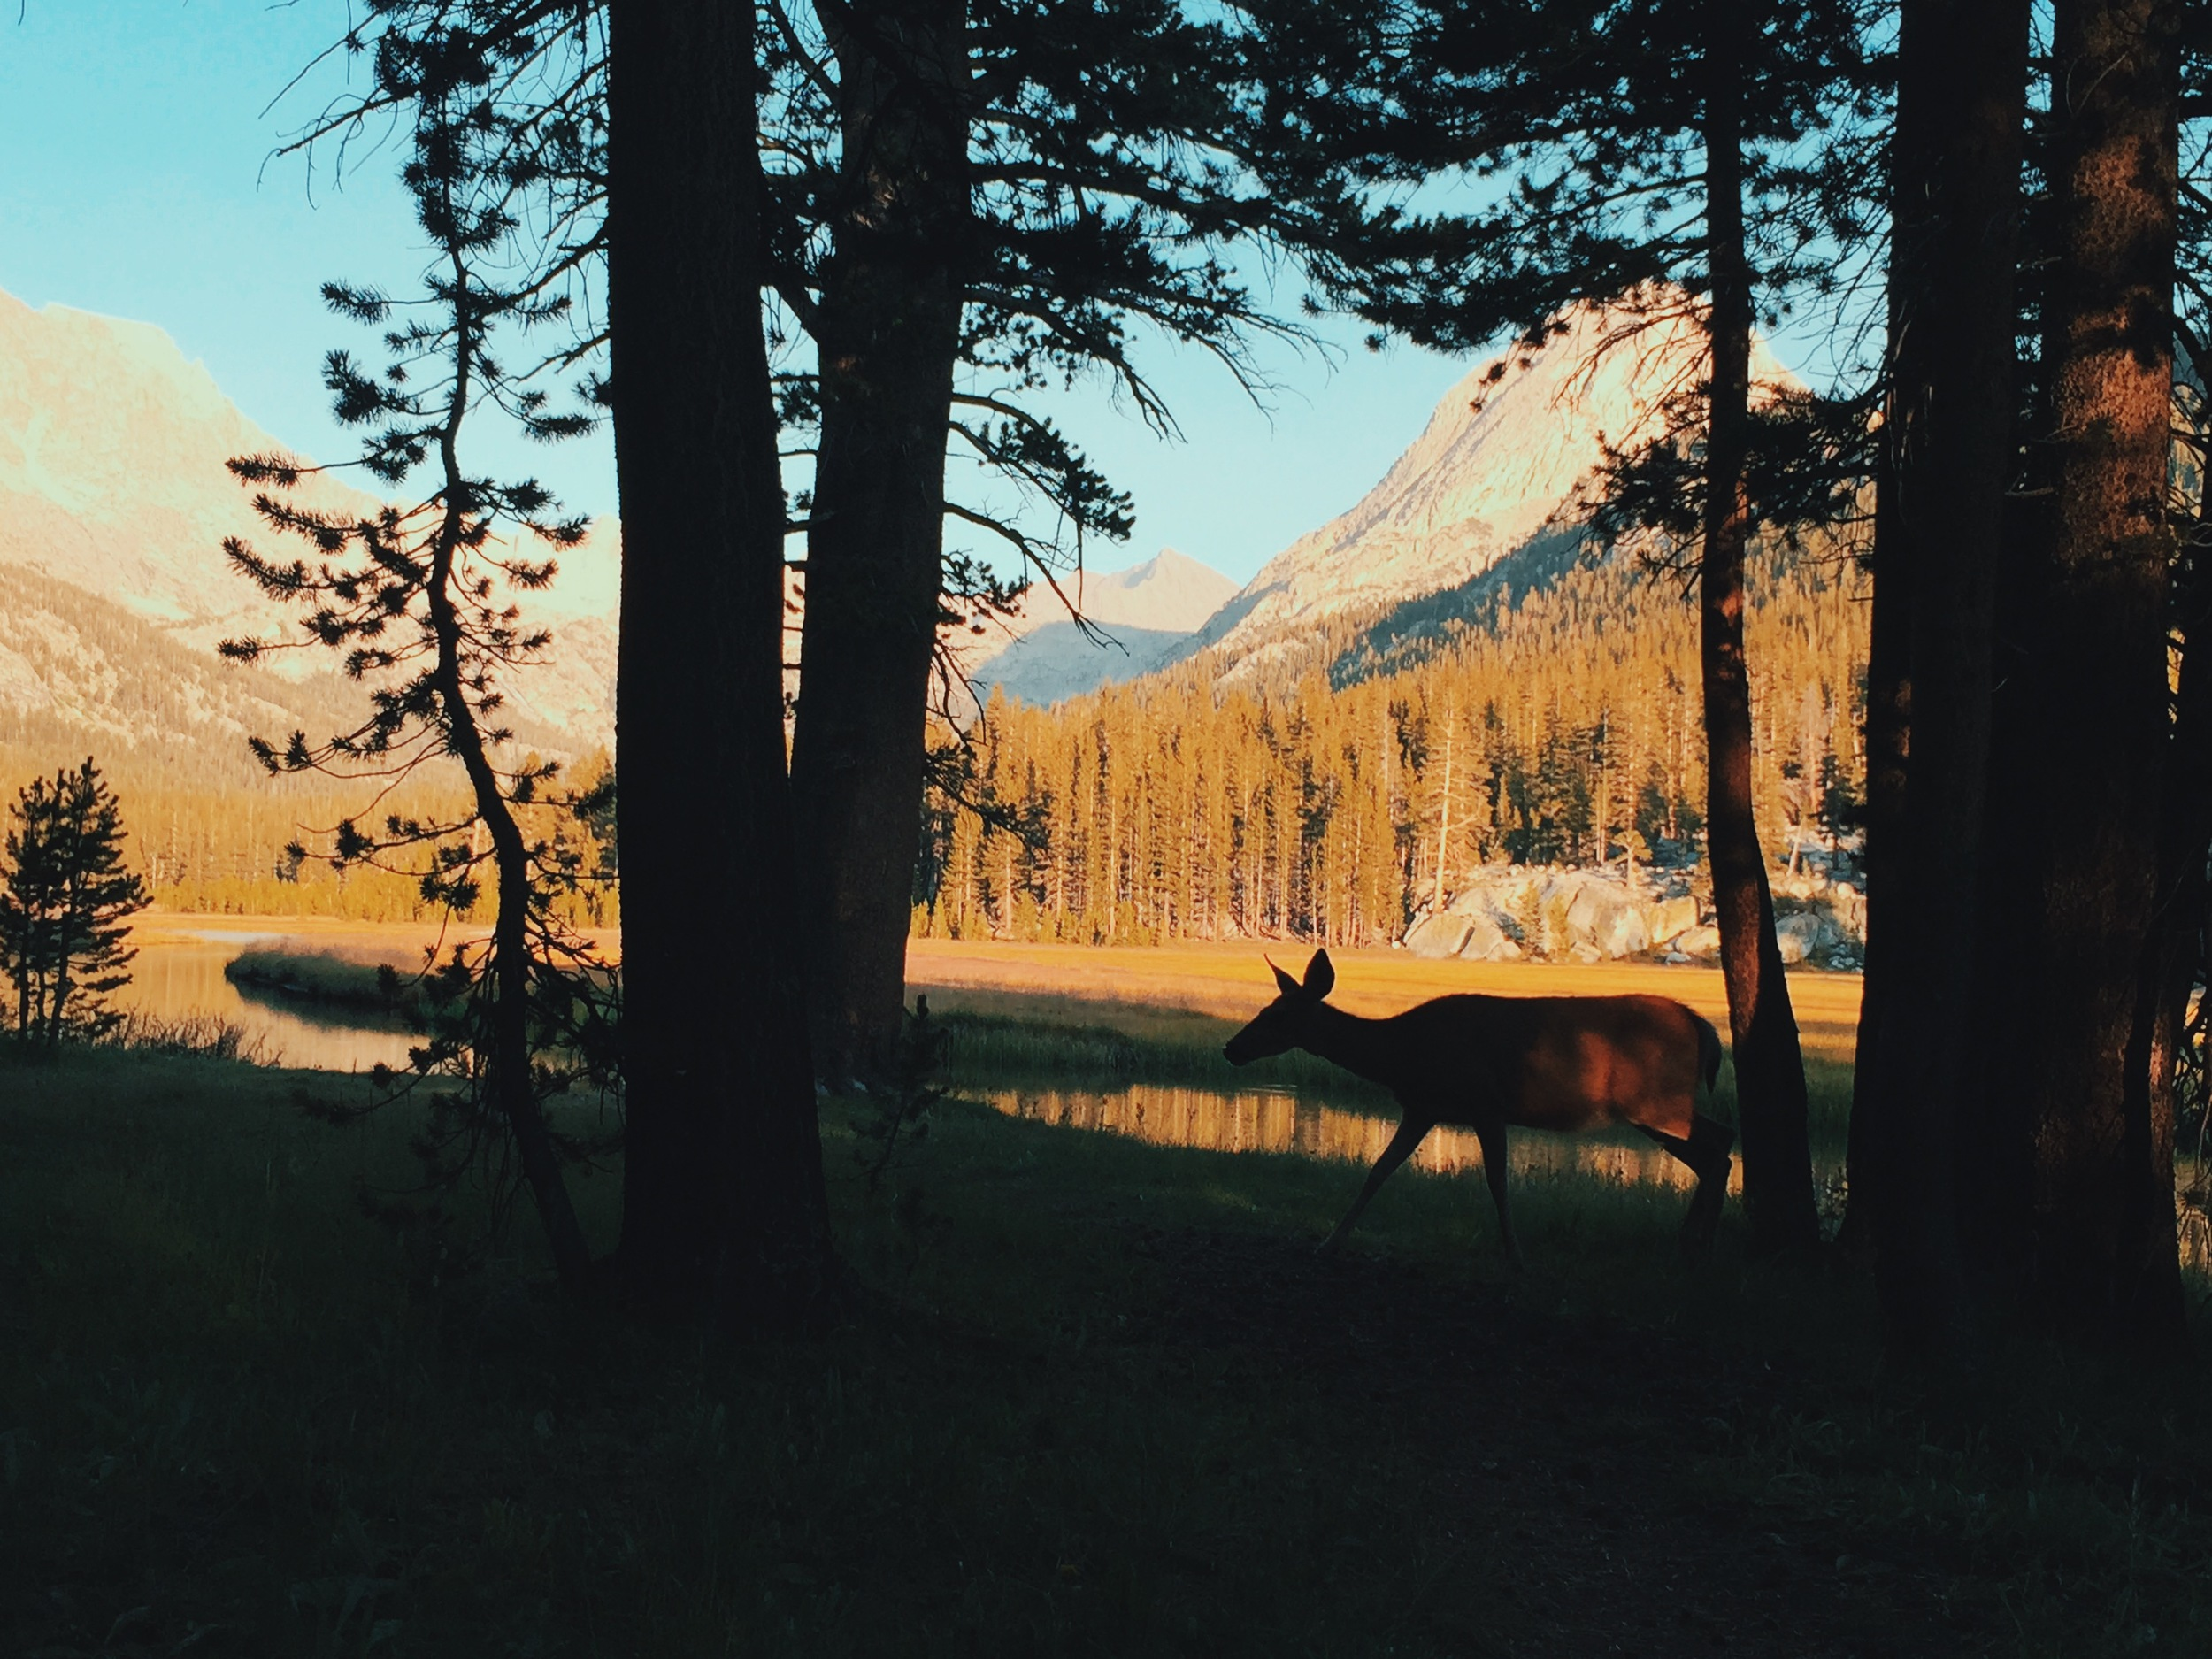 The deer didn't seem to mind sharing the lovely views.